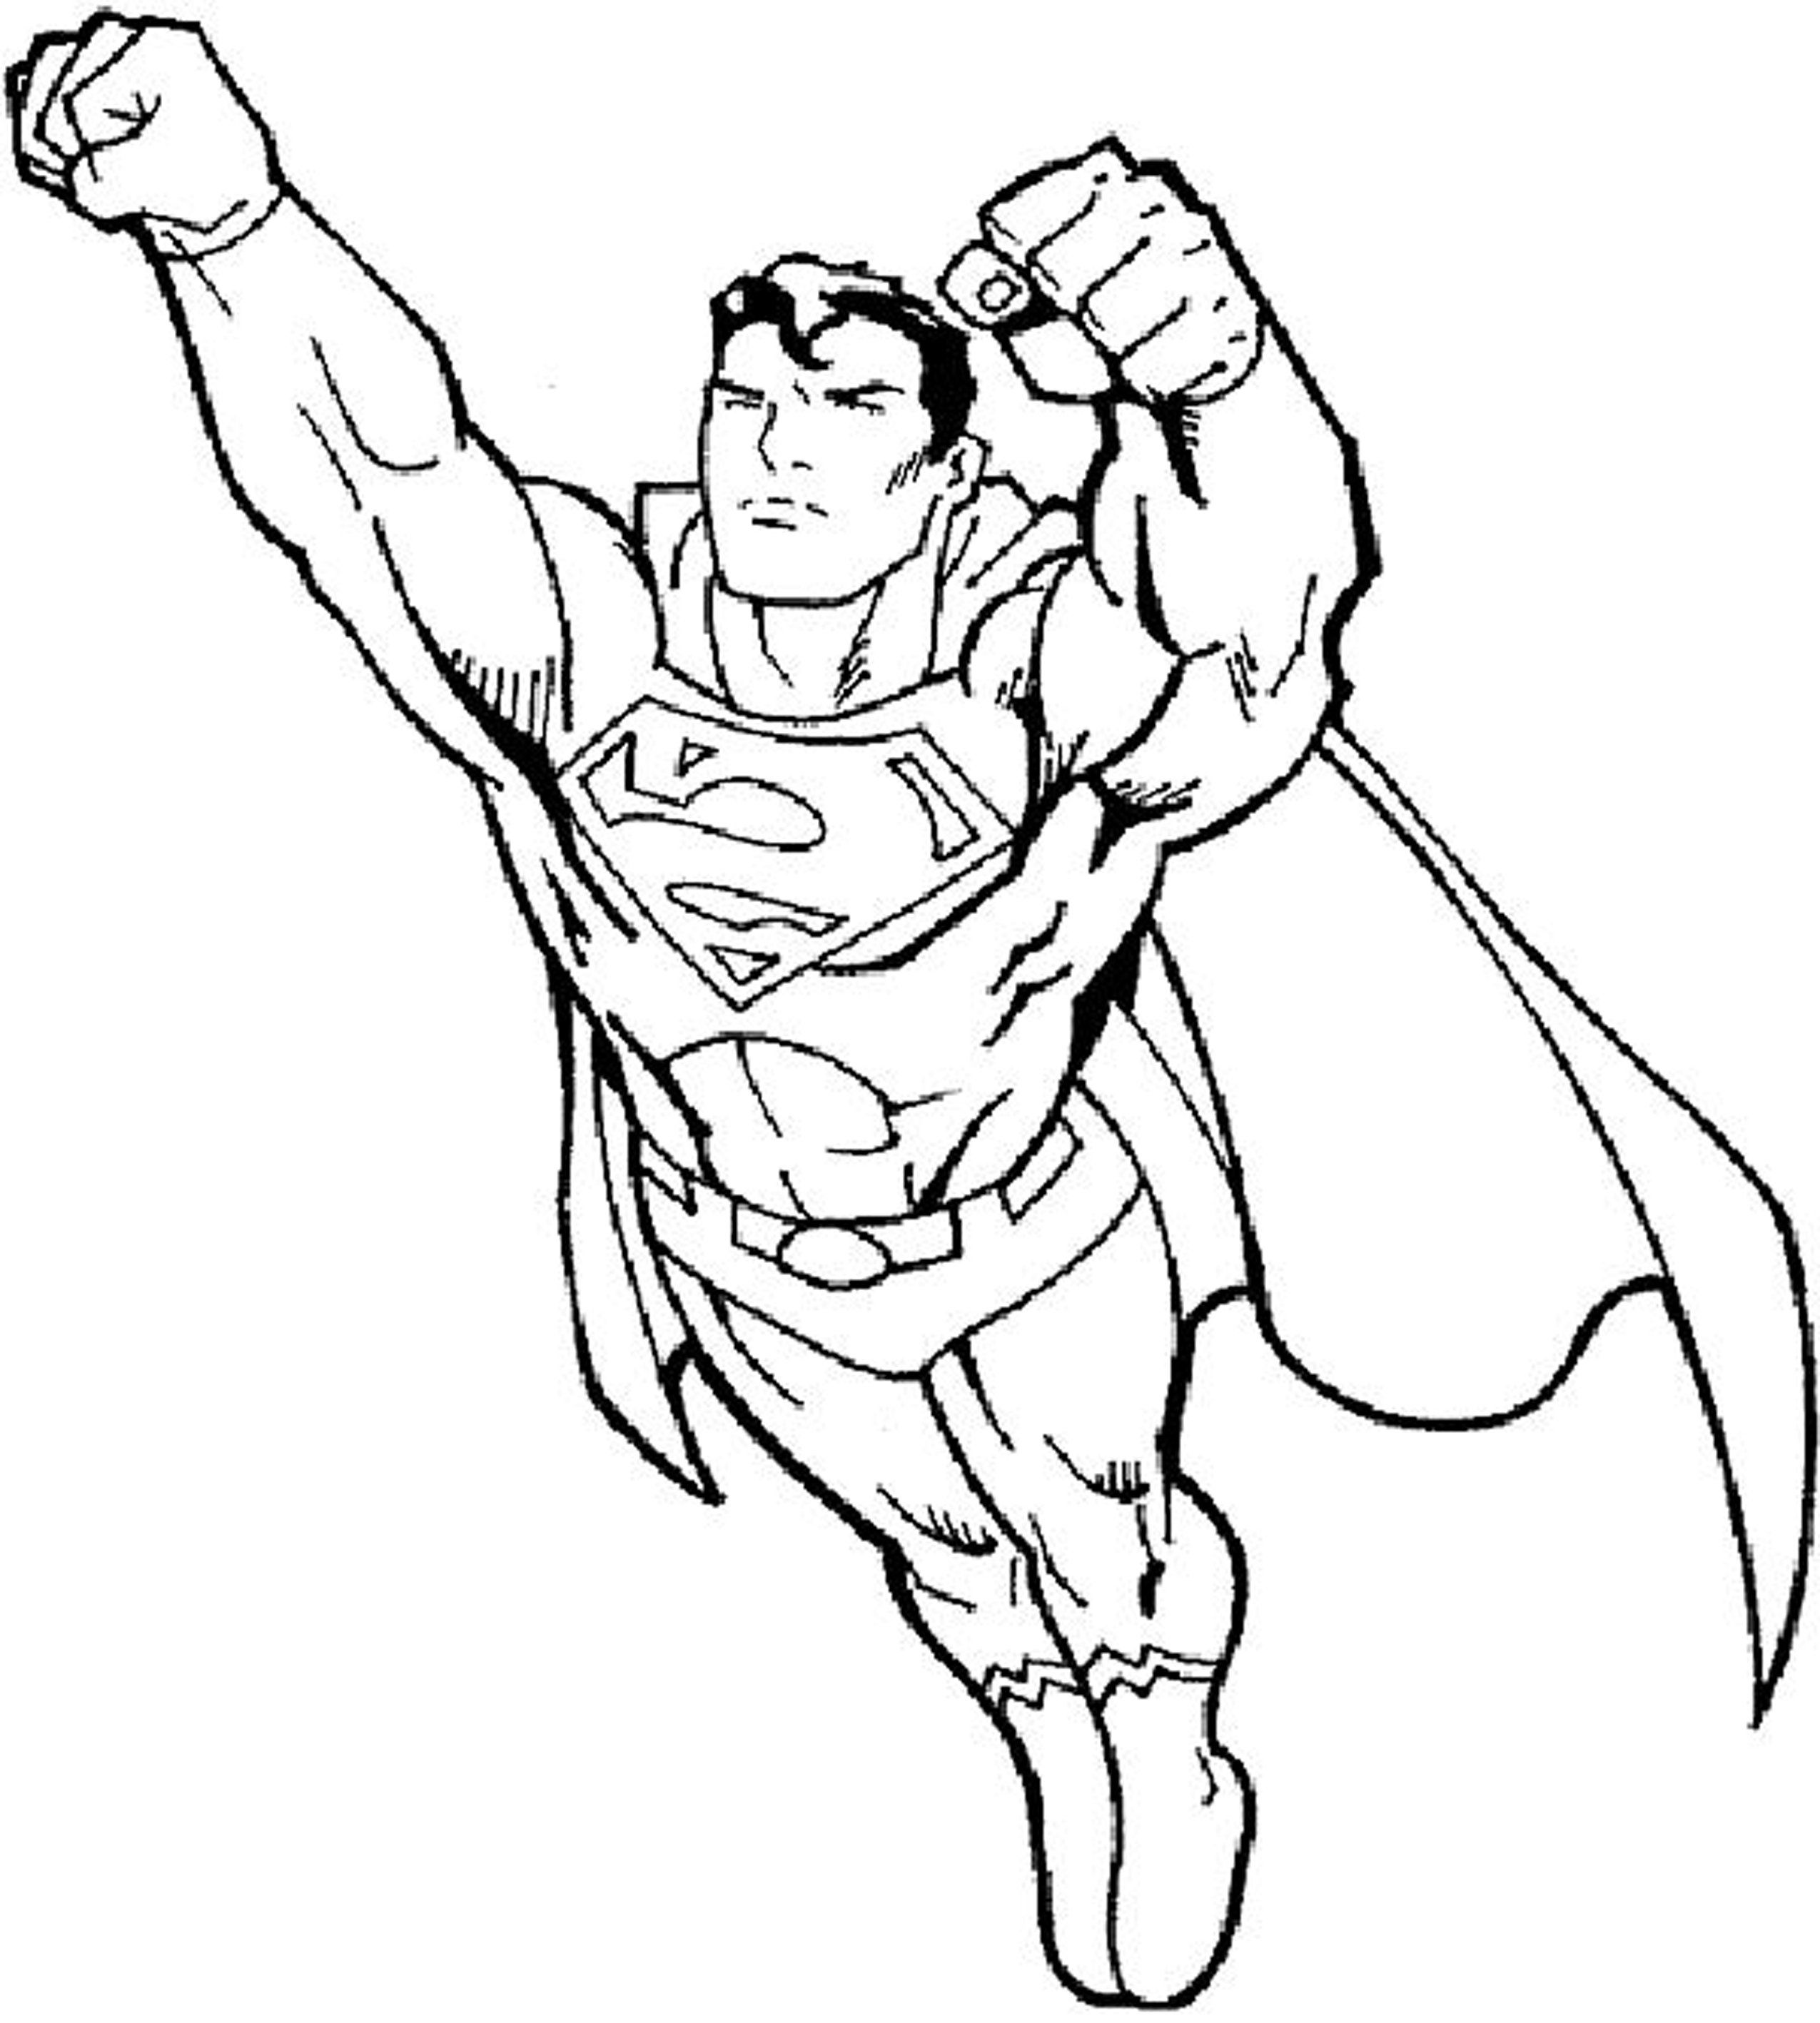 Free Coloring Pages For Boys Superman Printable Kids Colouring Pages Superhero Coloring Pages Superhero Coloring Coloring Pages For Boys